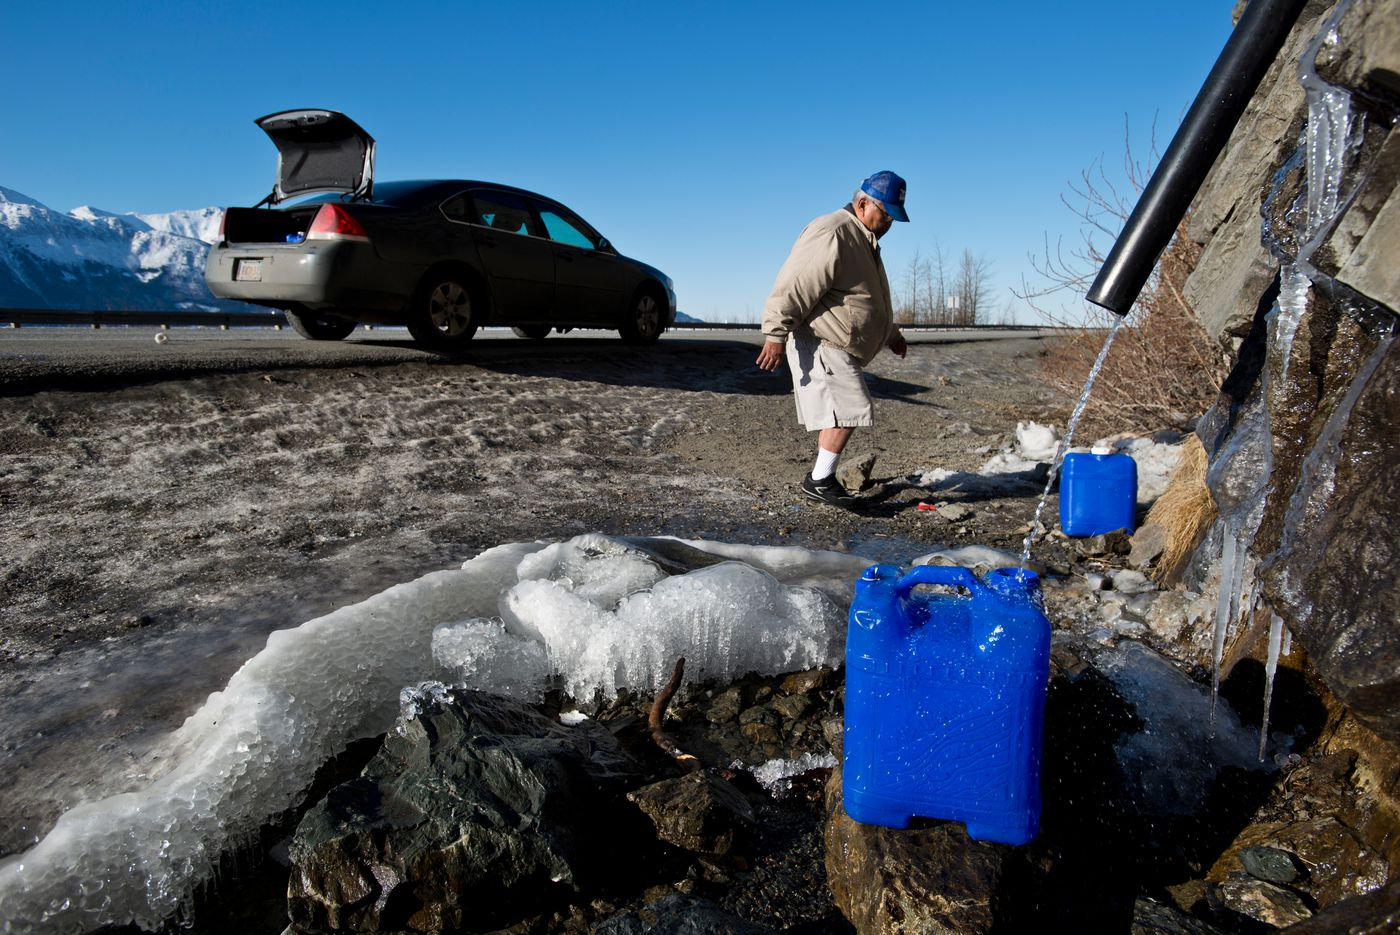 Willie Thomas carefully steps across ice spots in the ditch along the Seward Highway as he fills four large jugs last month. He said he doesn't have a problem with tap water, but prefers the taste of water from the highway pipe. (Marc Lester / Alaska Dispatch News)